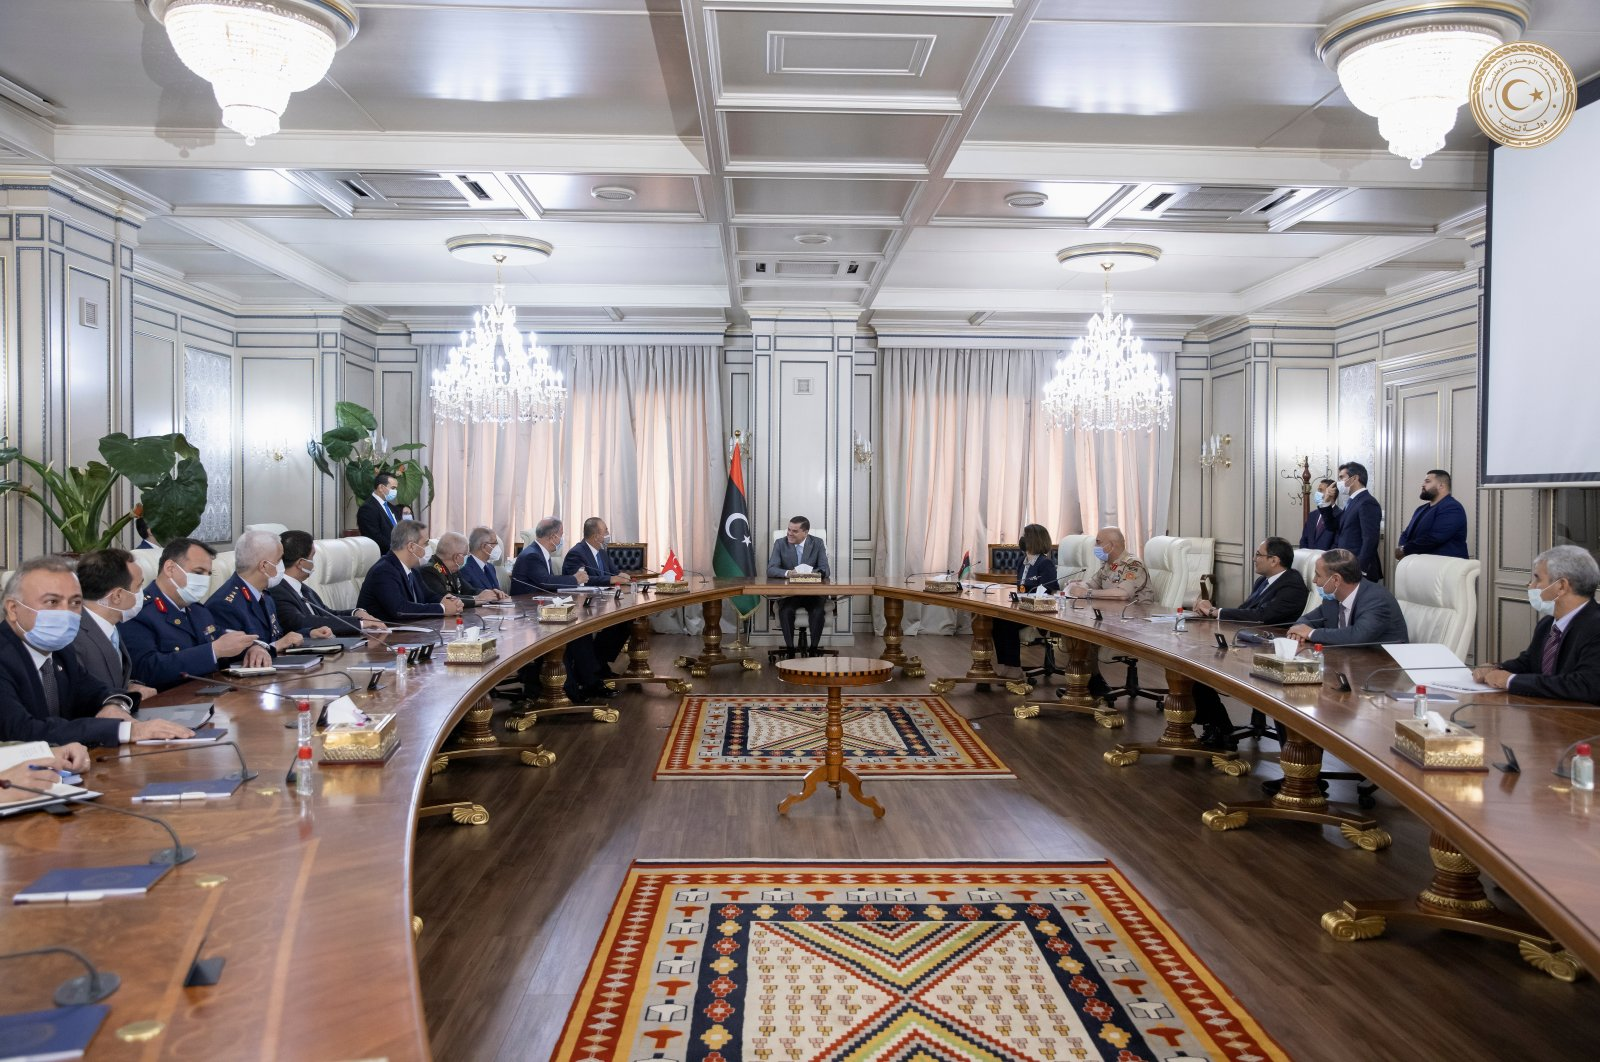 Turkish and Libyan senior officials gather for a meeting in Tripoli, Libya, May 3, 2021. (Reuters Photo)